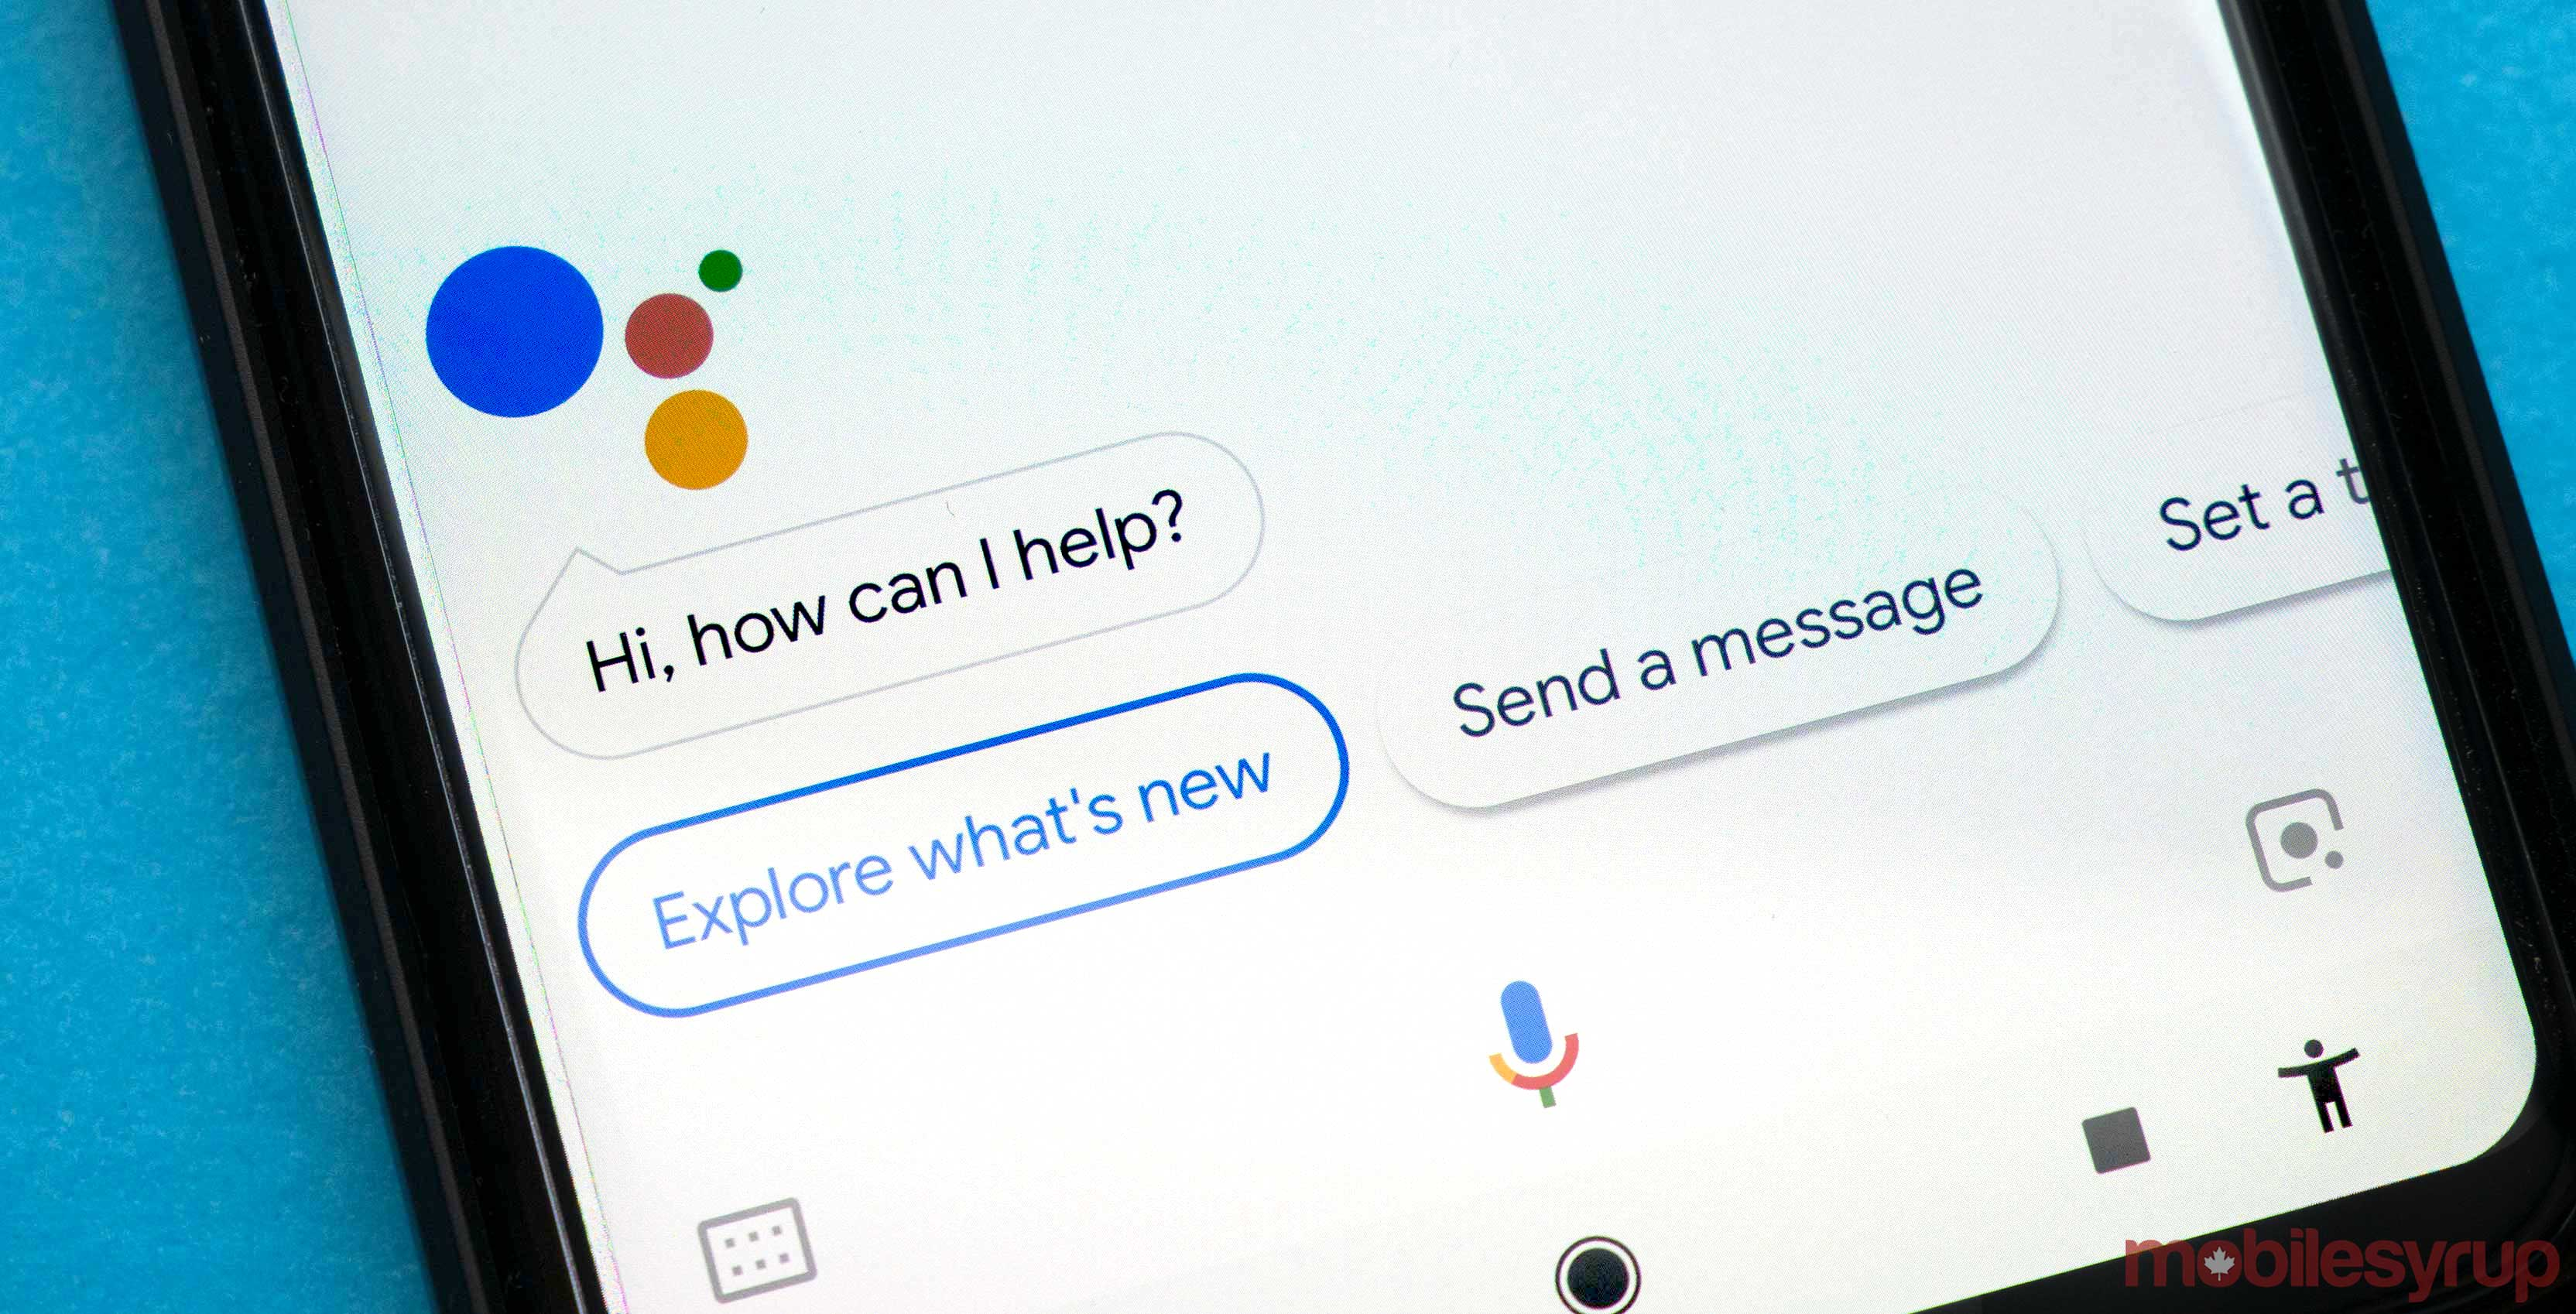 Google Assistant comes to your text messages